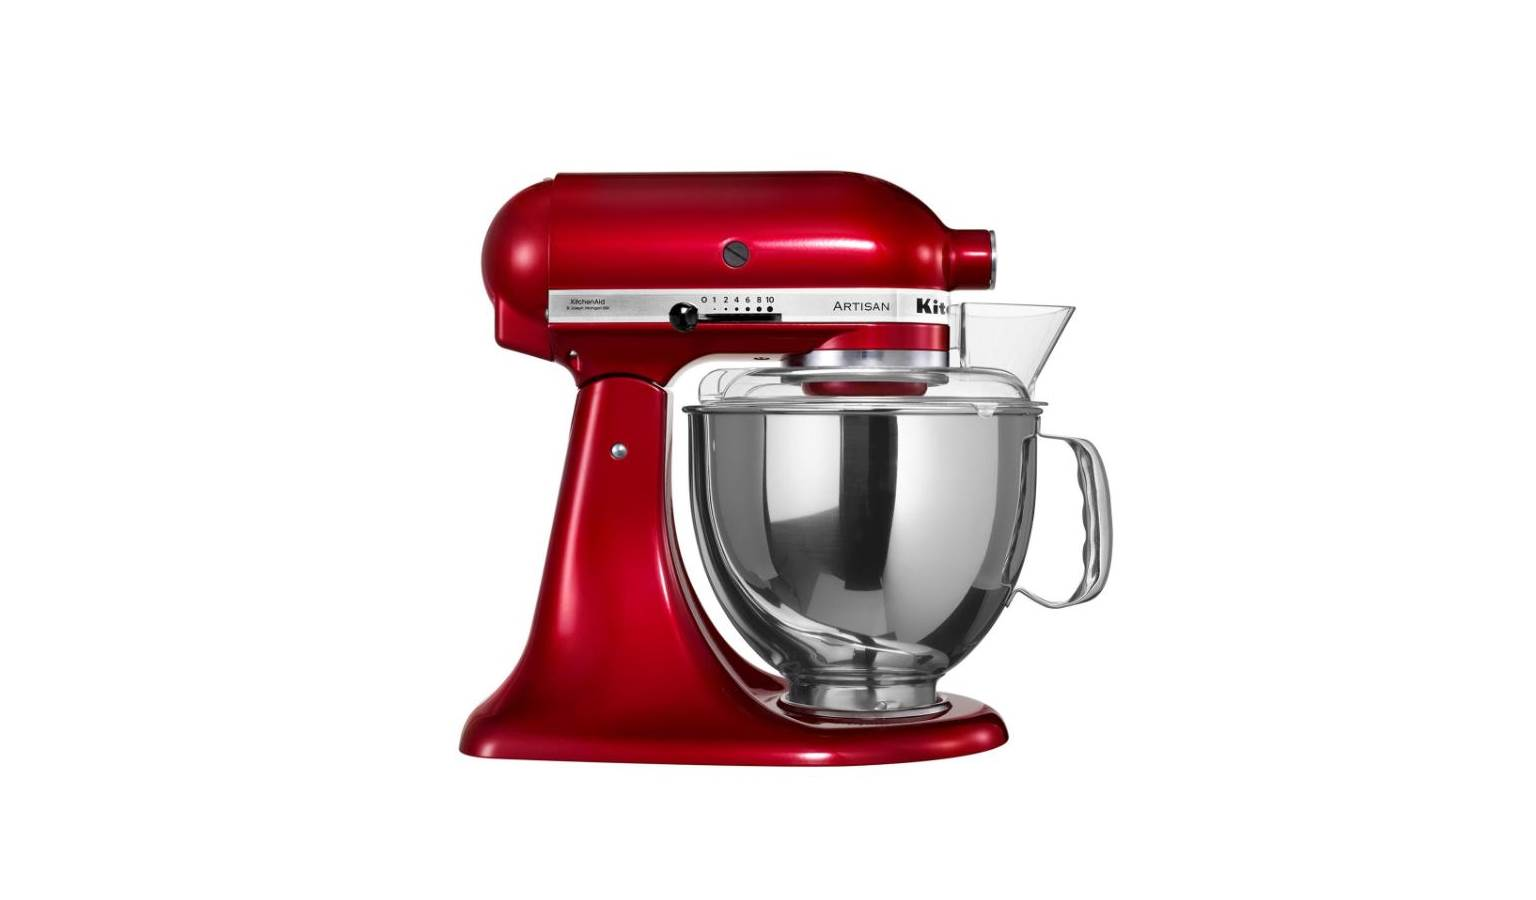 Kitchenaid KSM150 48L Tilt Head Stand Mixer Candy Apple